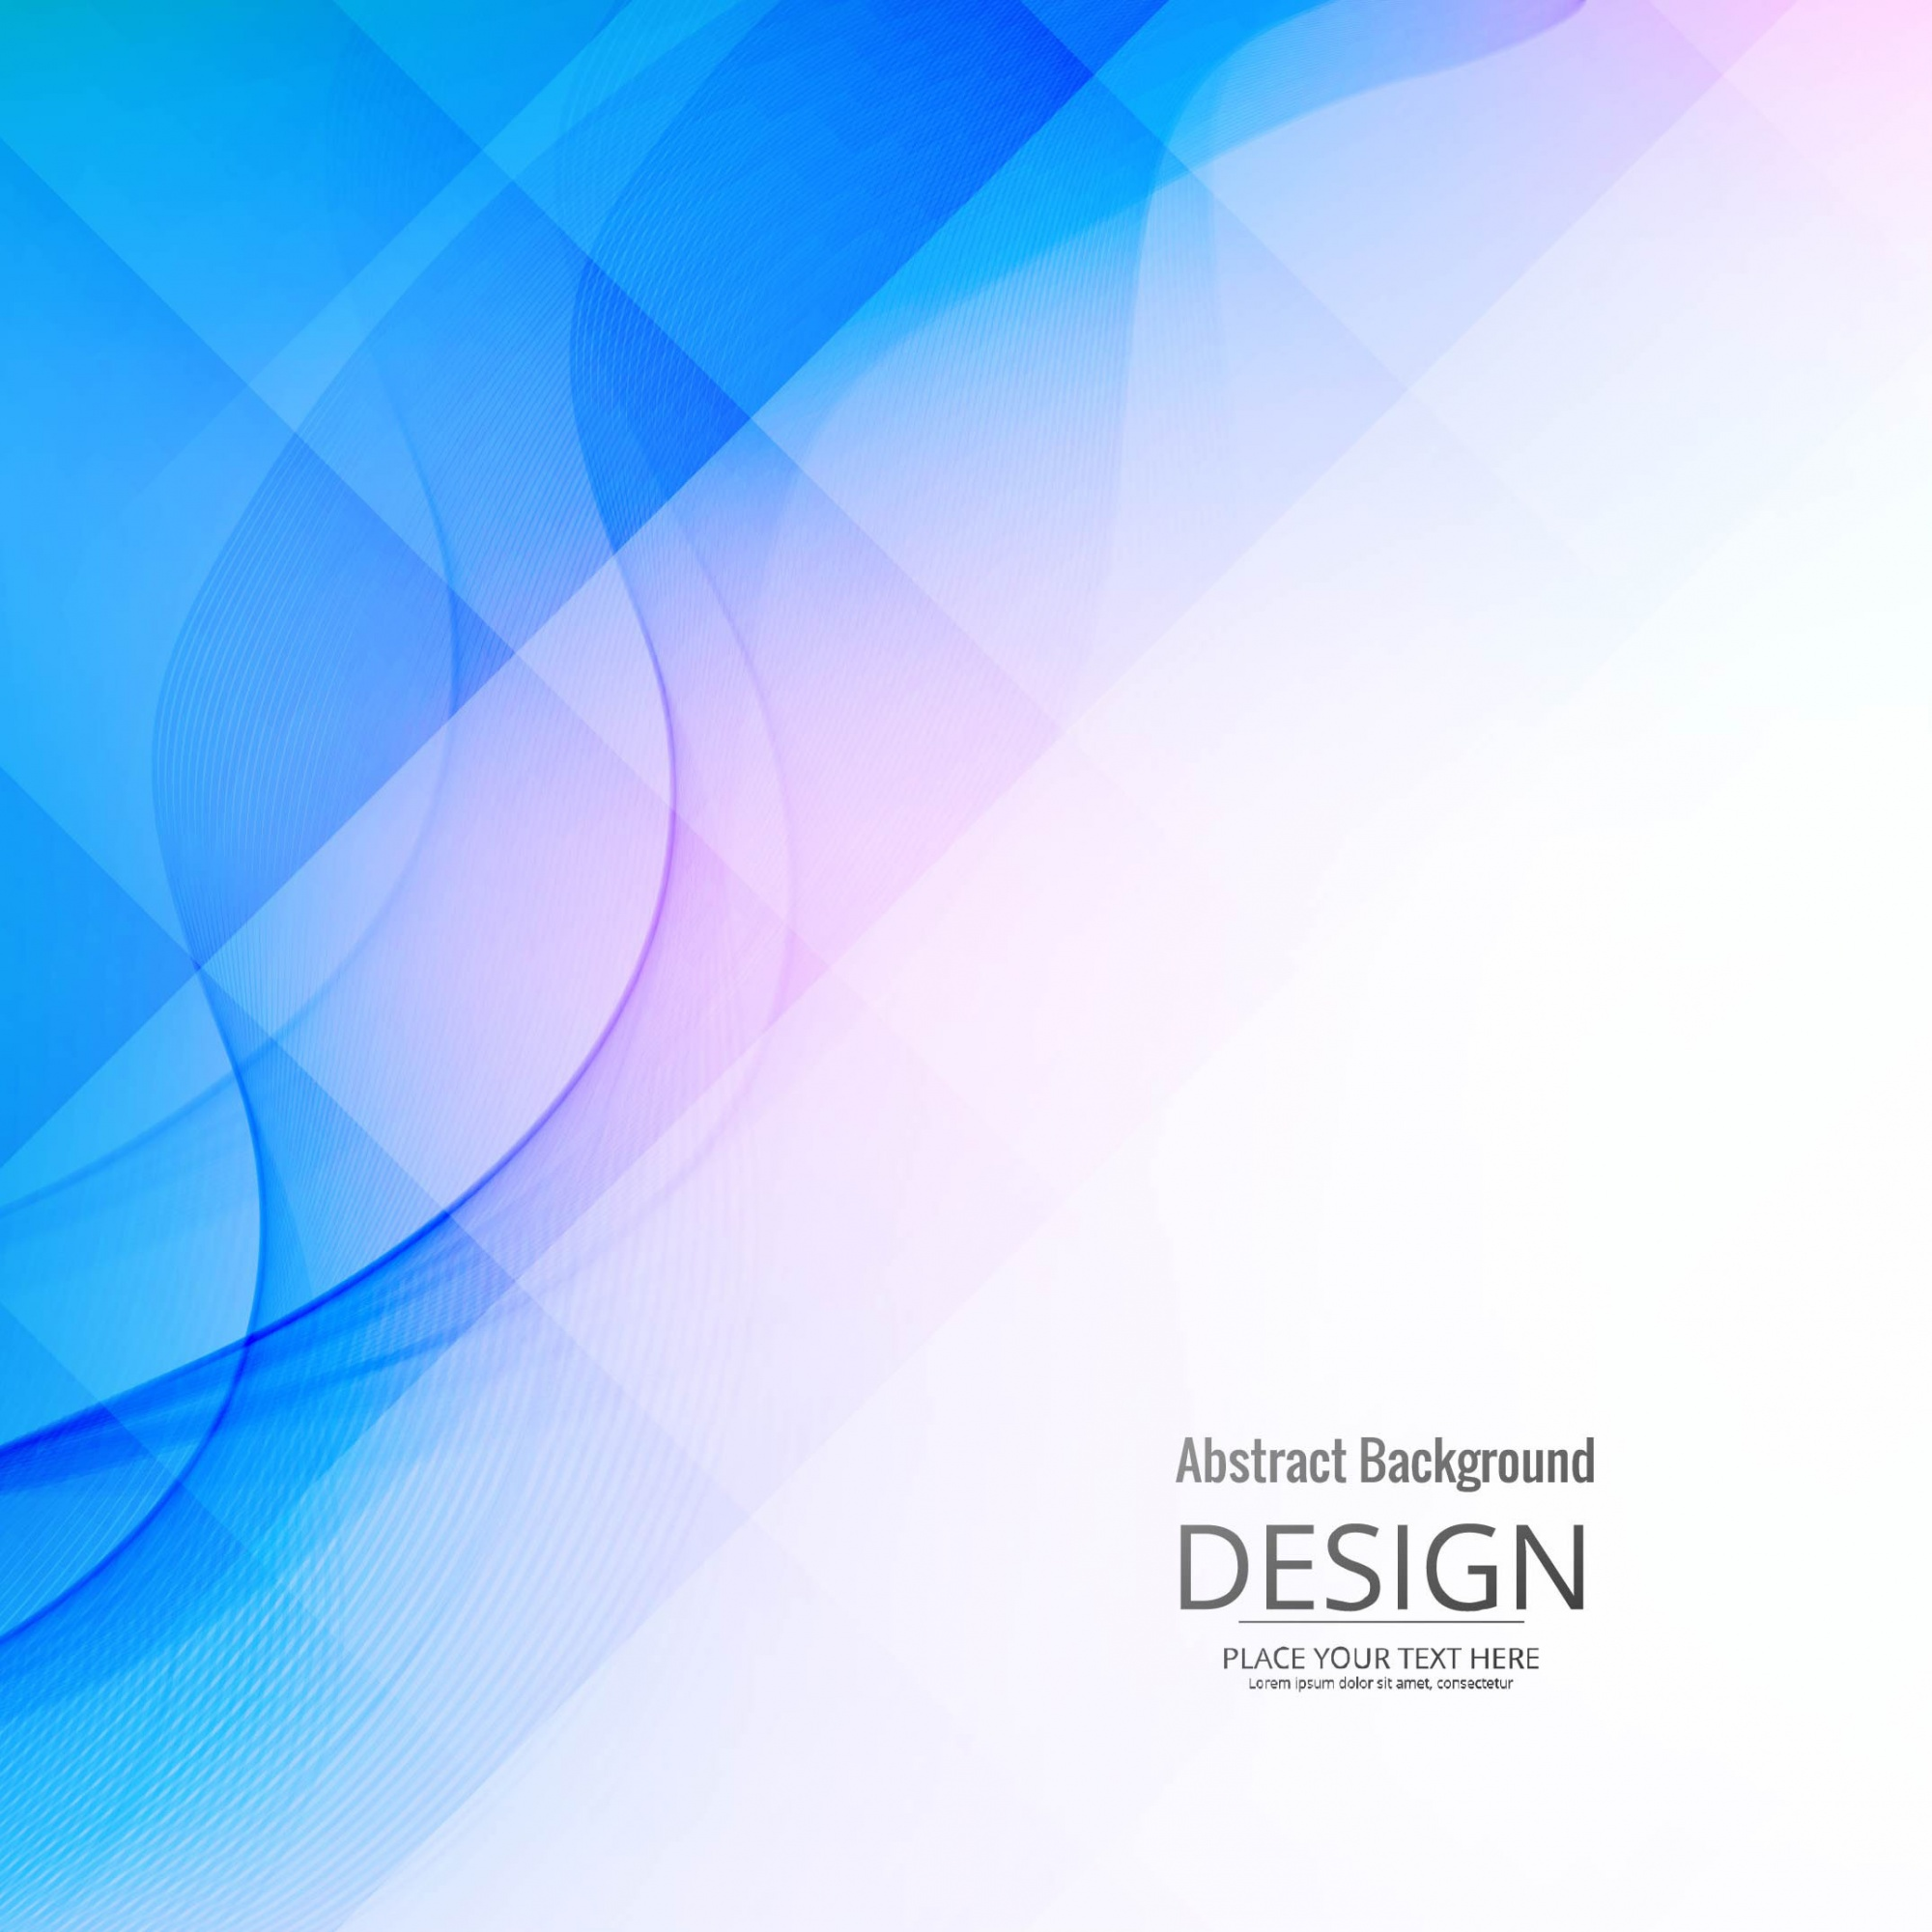 Abstract blue modern background